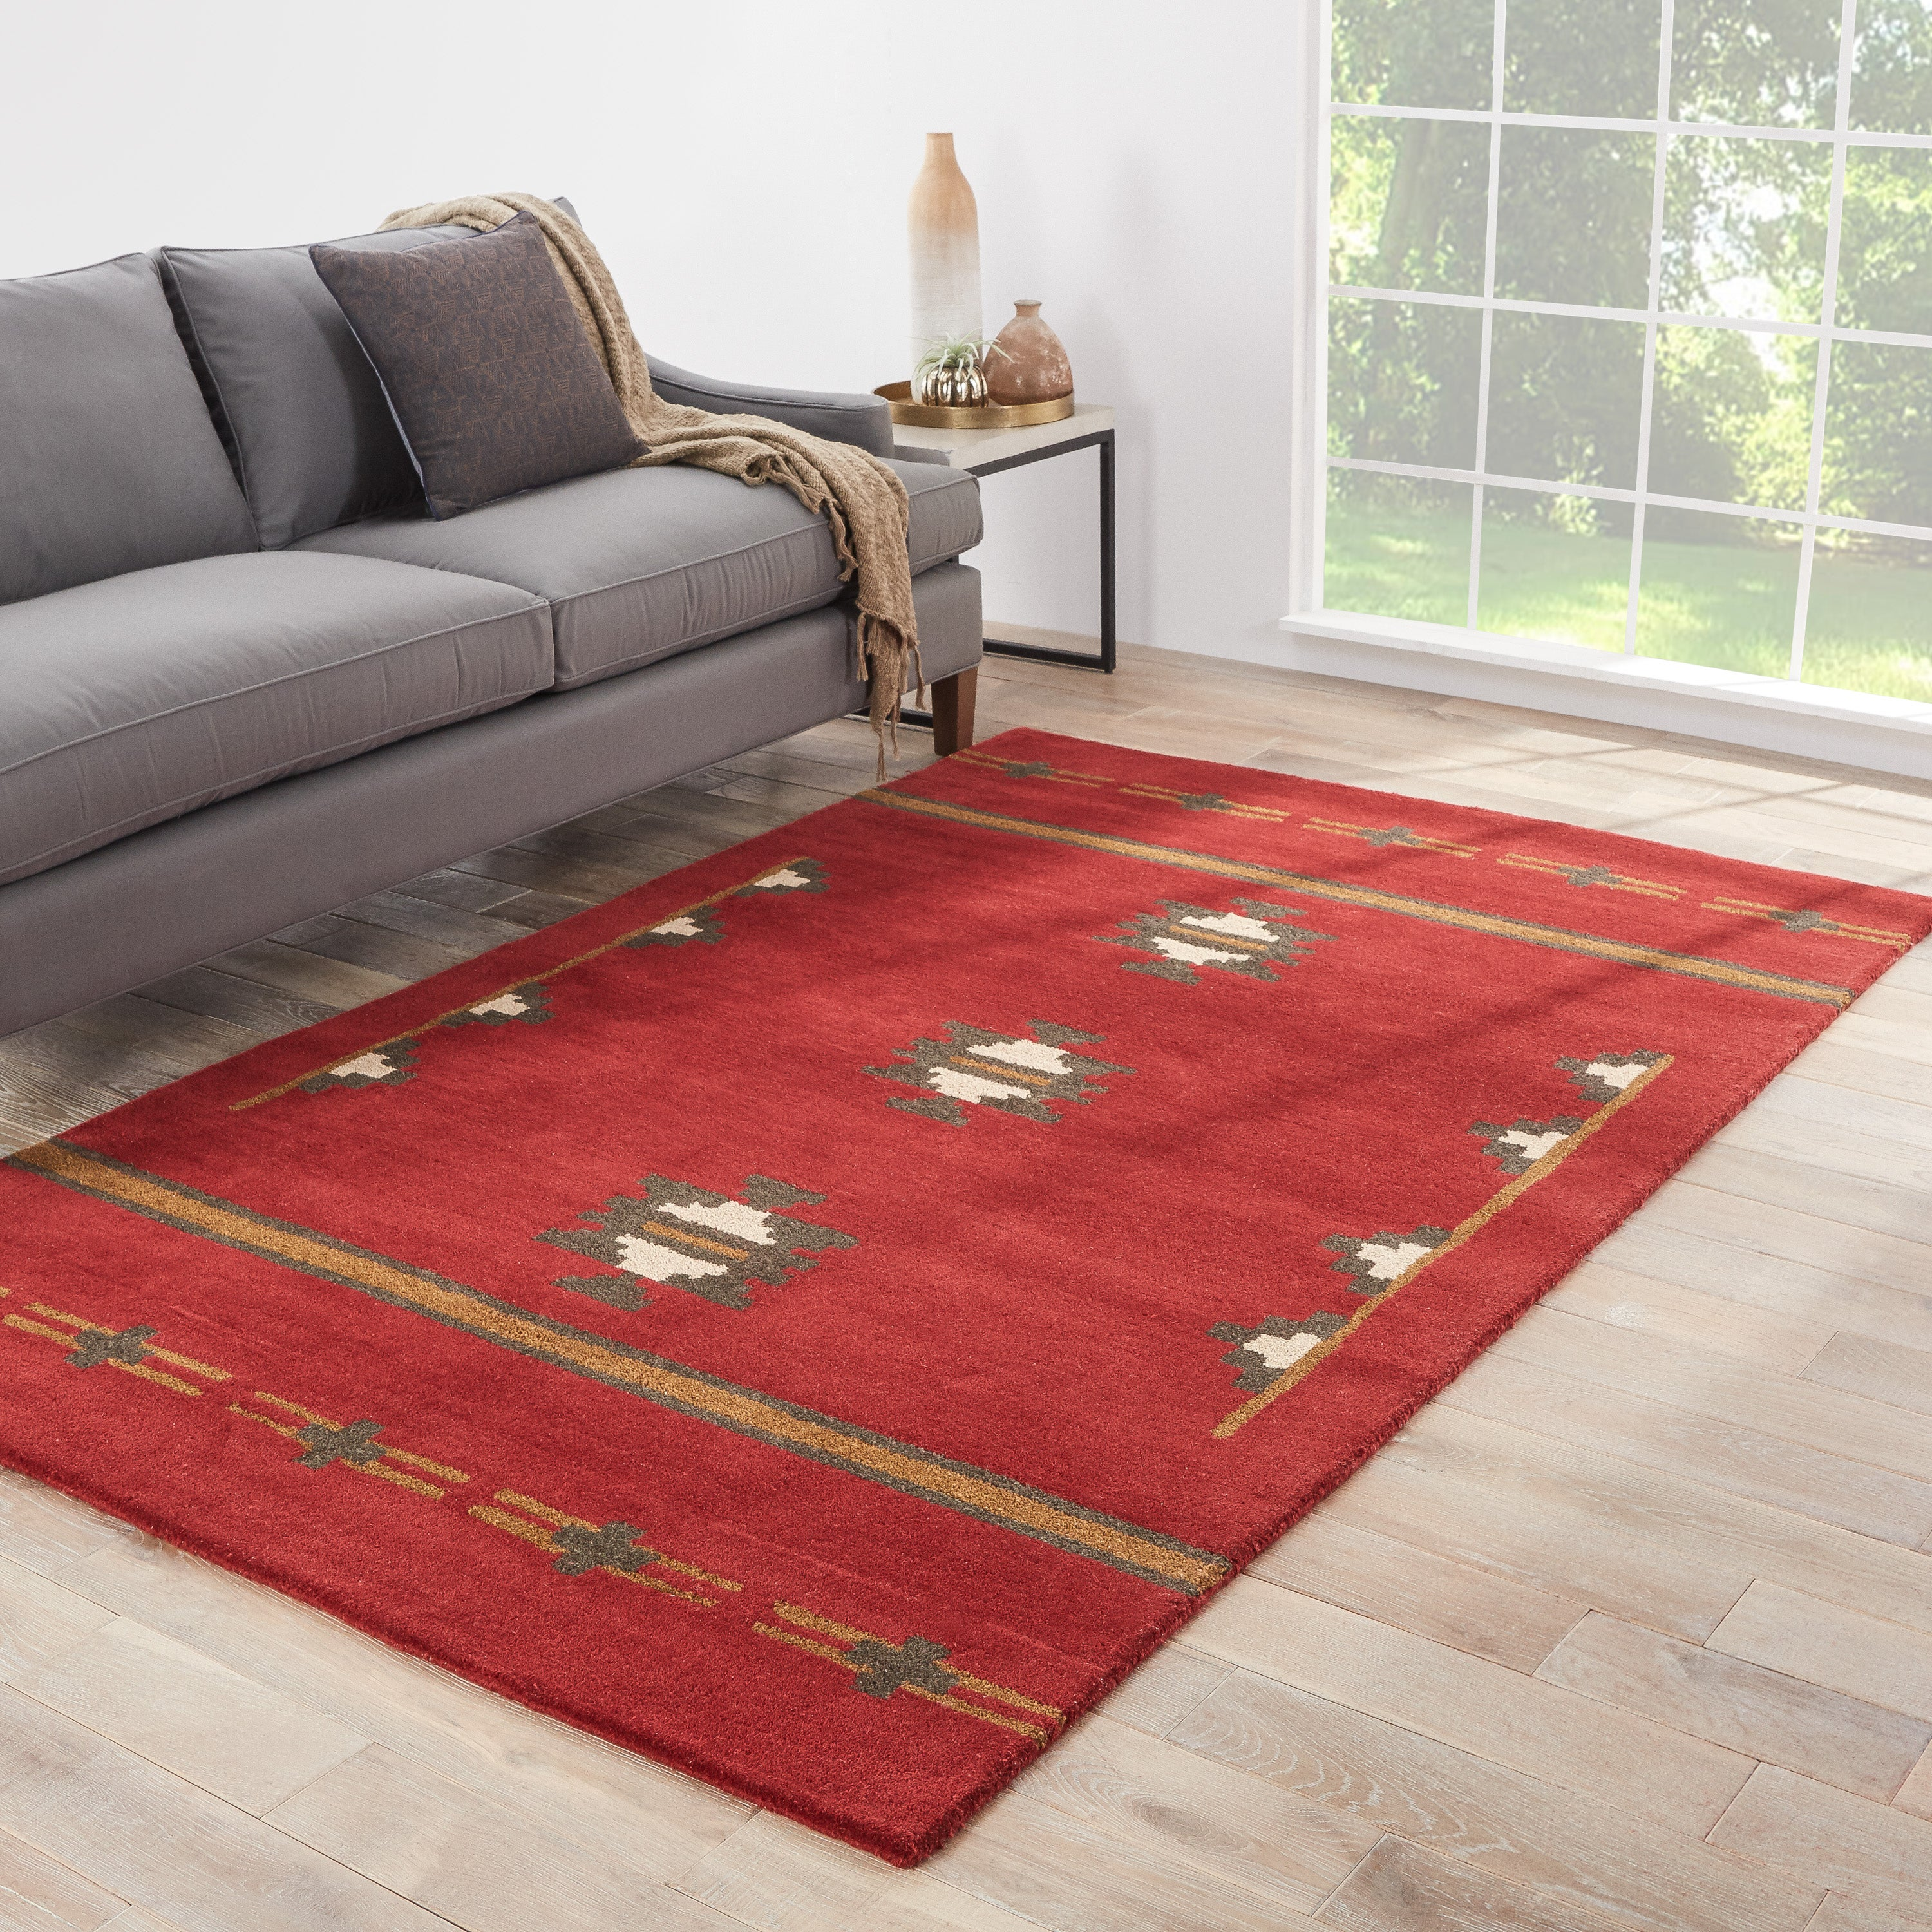 Rectangle Red Medallion Hand Tufted Wool Southwestern recommended for Bedroom, Bathroom, Dining Room, Office, Hallway, Living Room